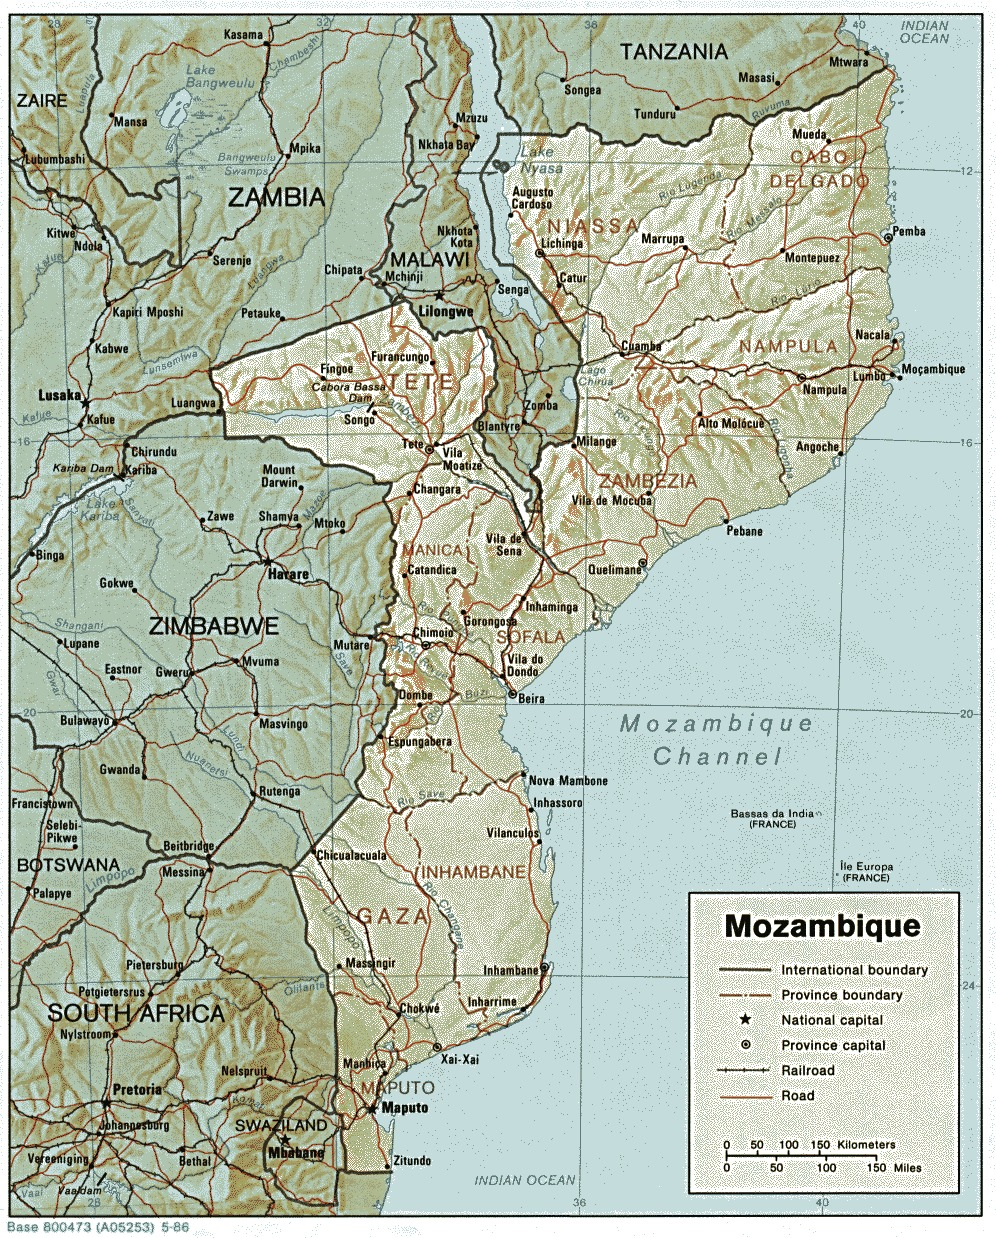 Mapa de Relieve Sombreado de Mozambique